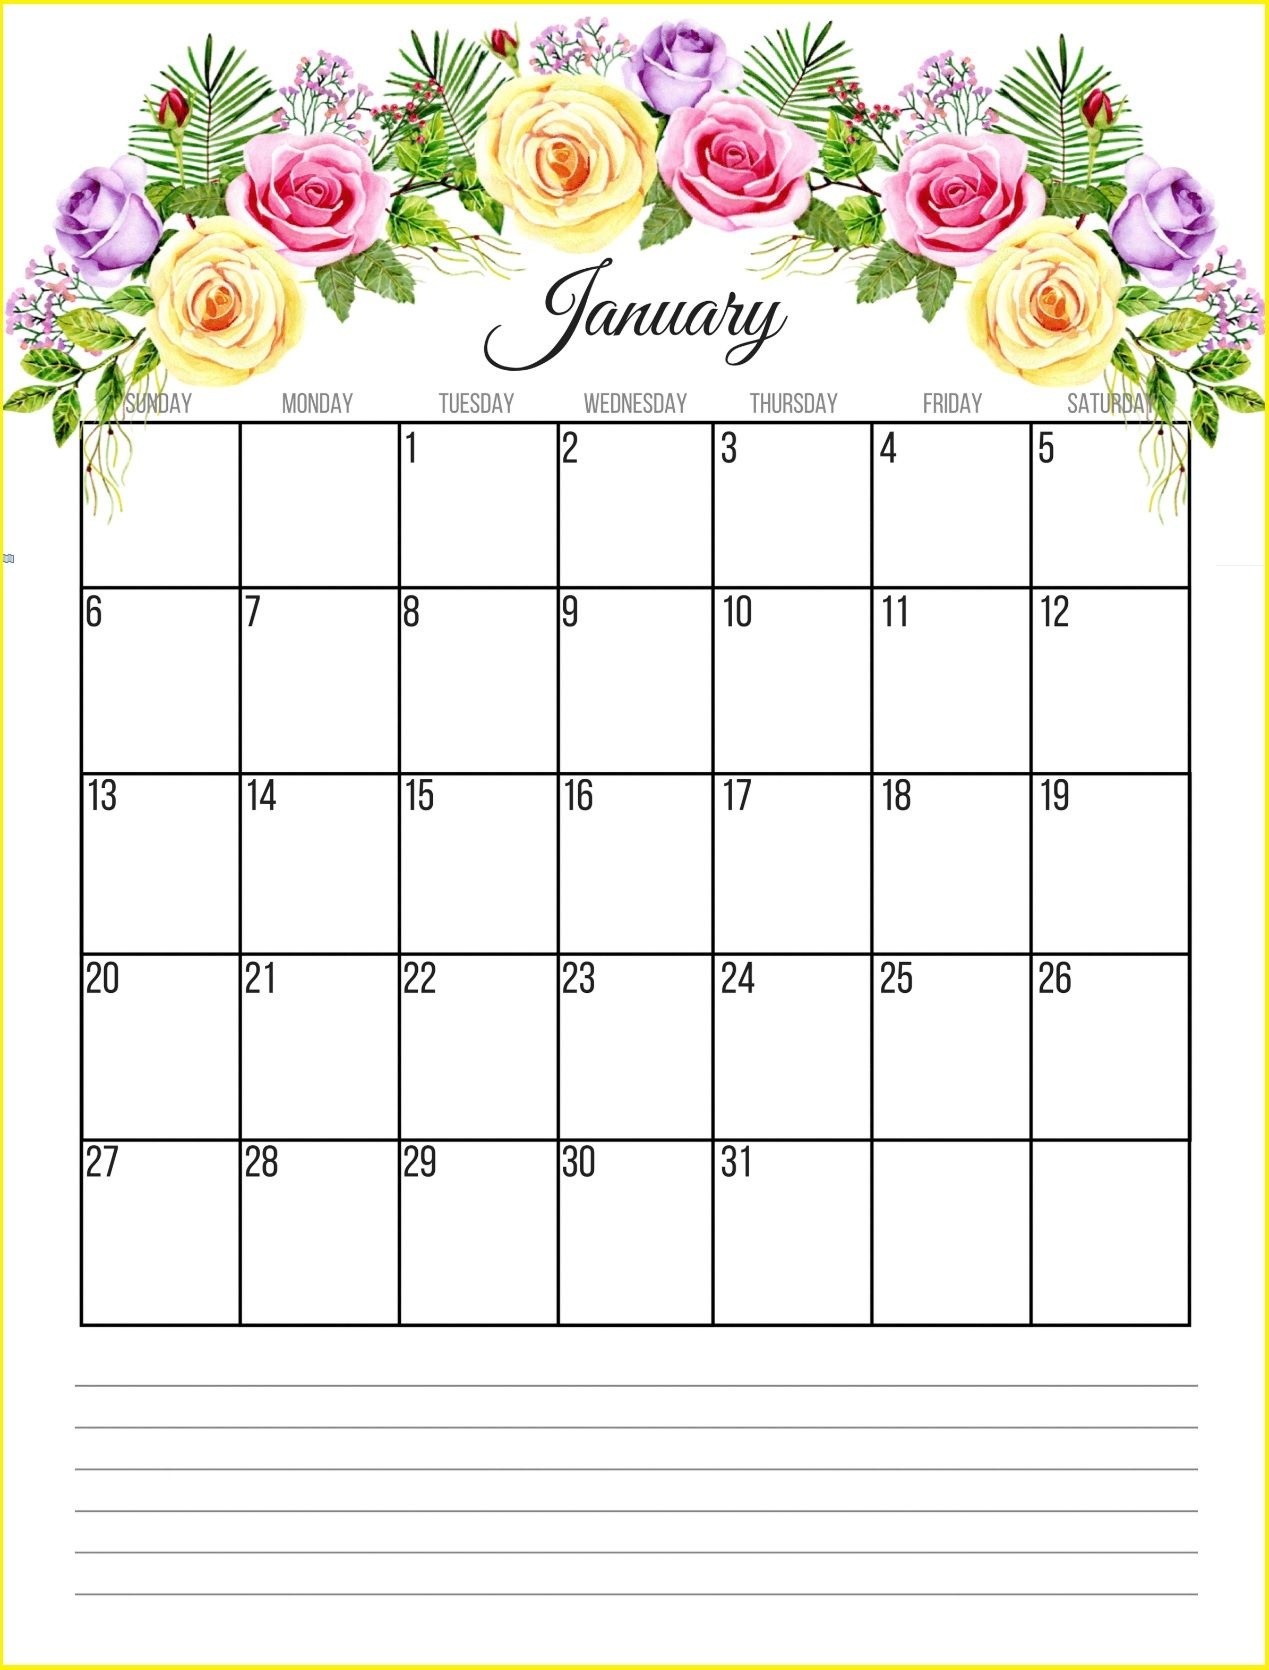 January 2019 Floral Calendar Free Printable January 2019 Floral Designs Calendars and Templates for Desk Wall